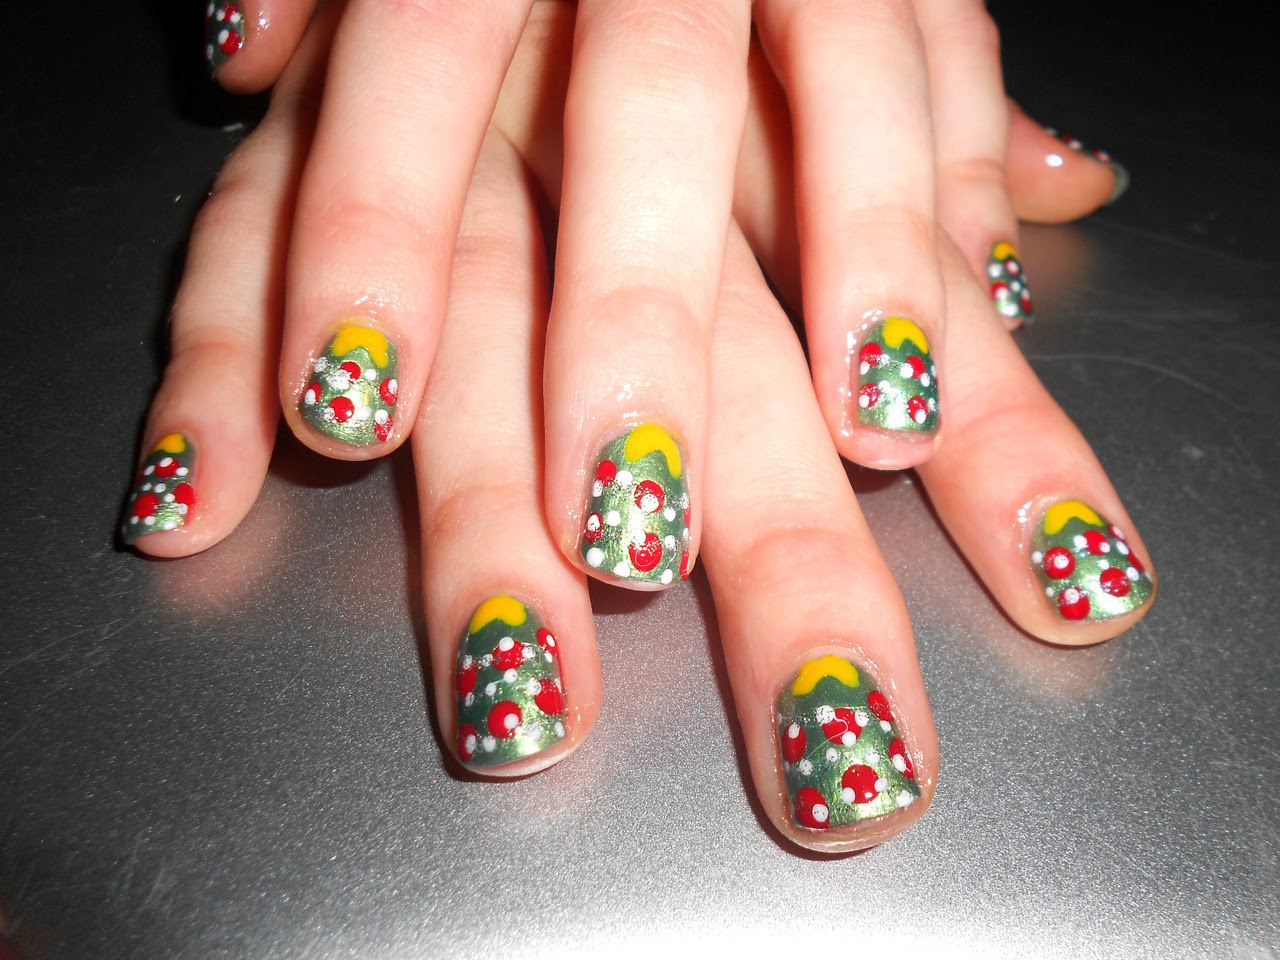 Kelesea's Christmas nails this week. They aren't the greatest but they're still cute.